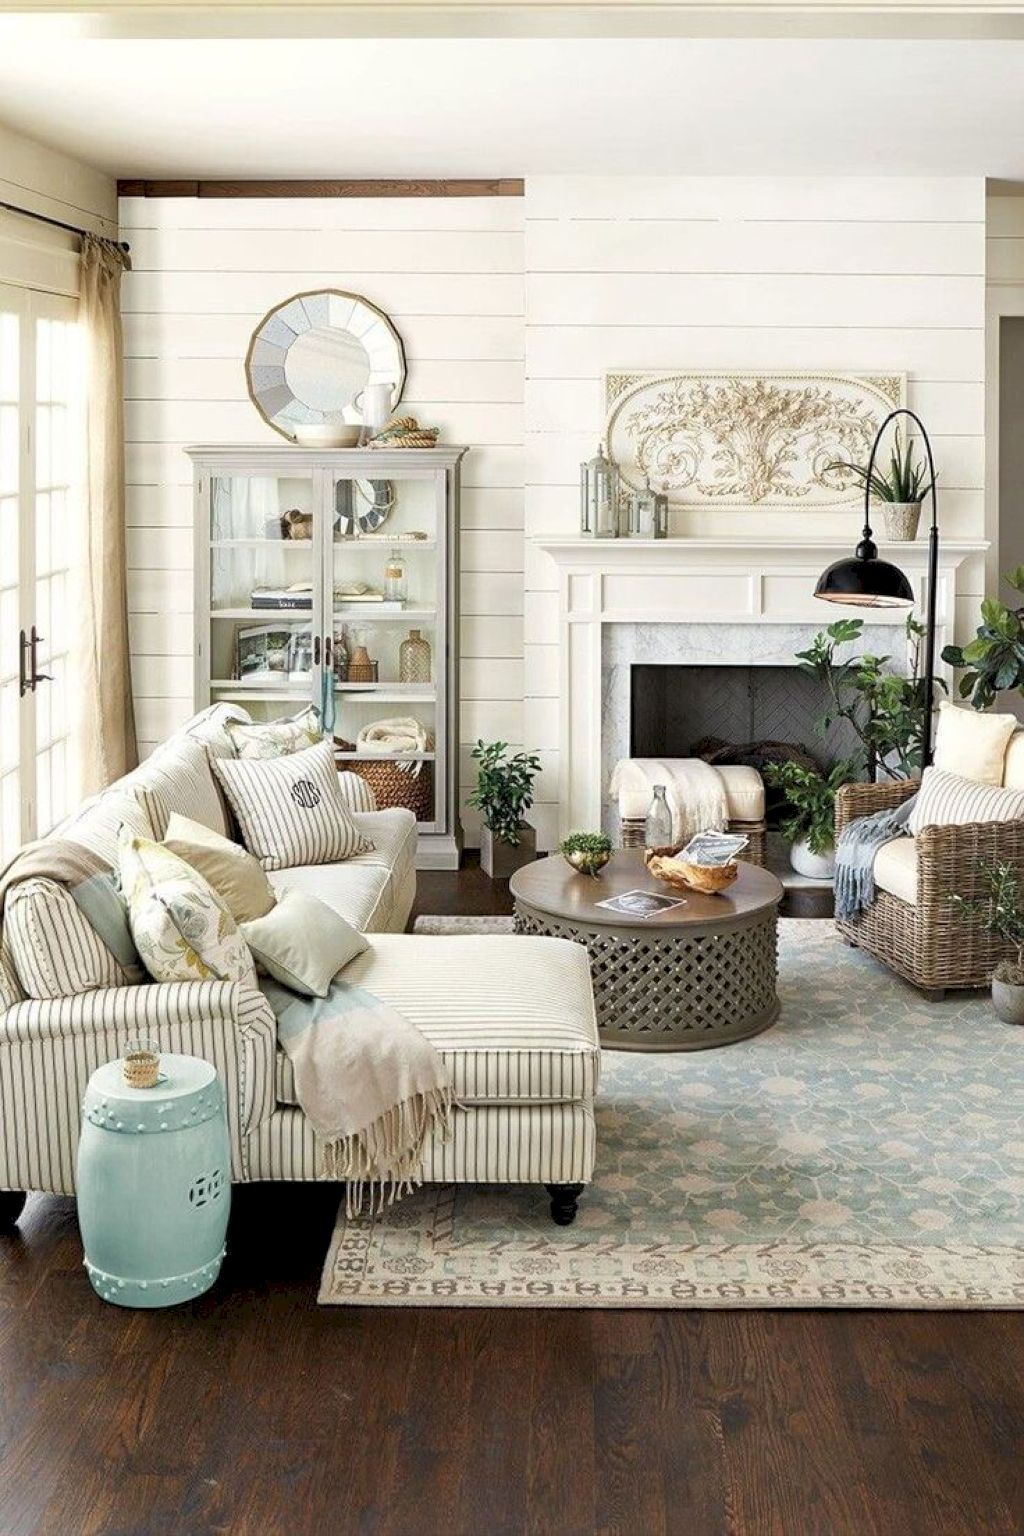 35 Awesome Modern Farmhouse Living Room Decor Ideas Good Looking